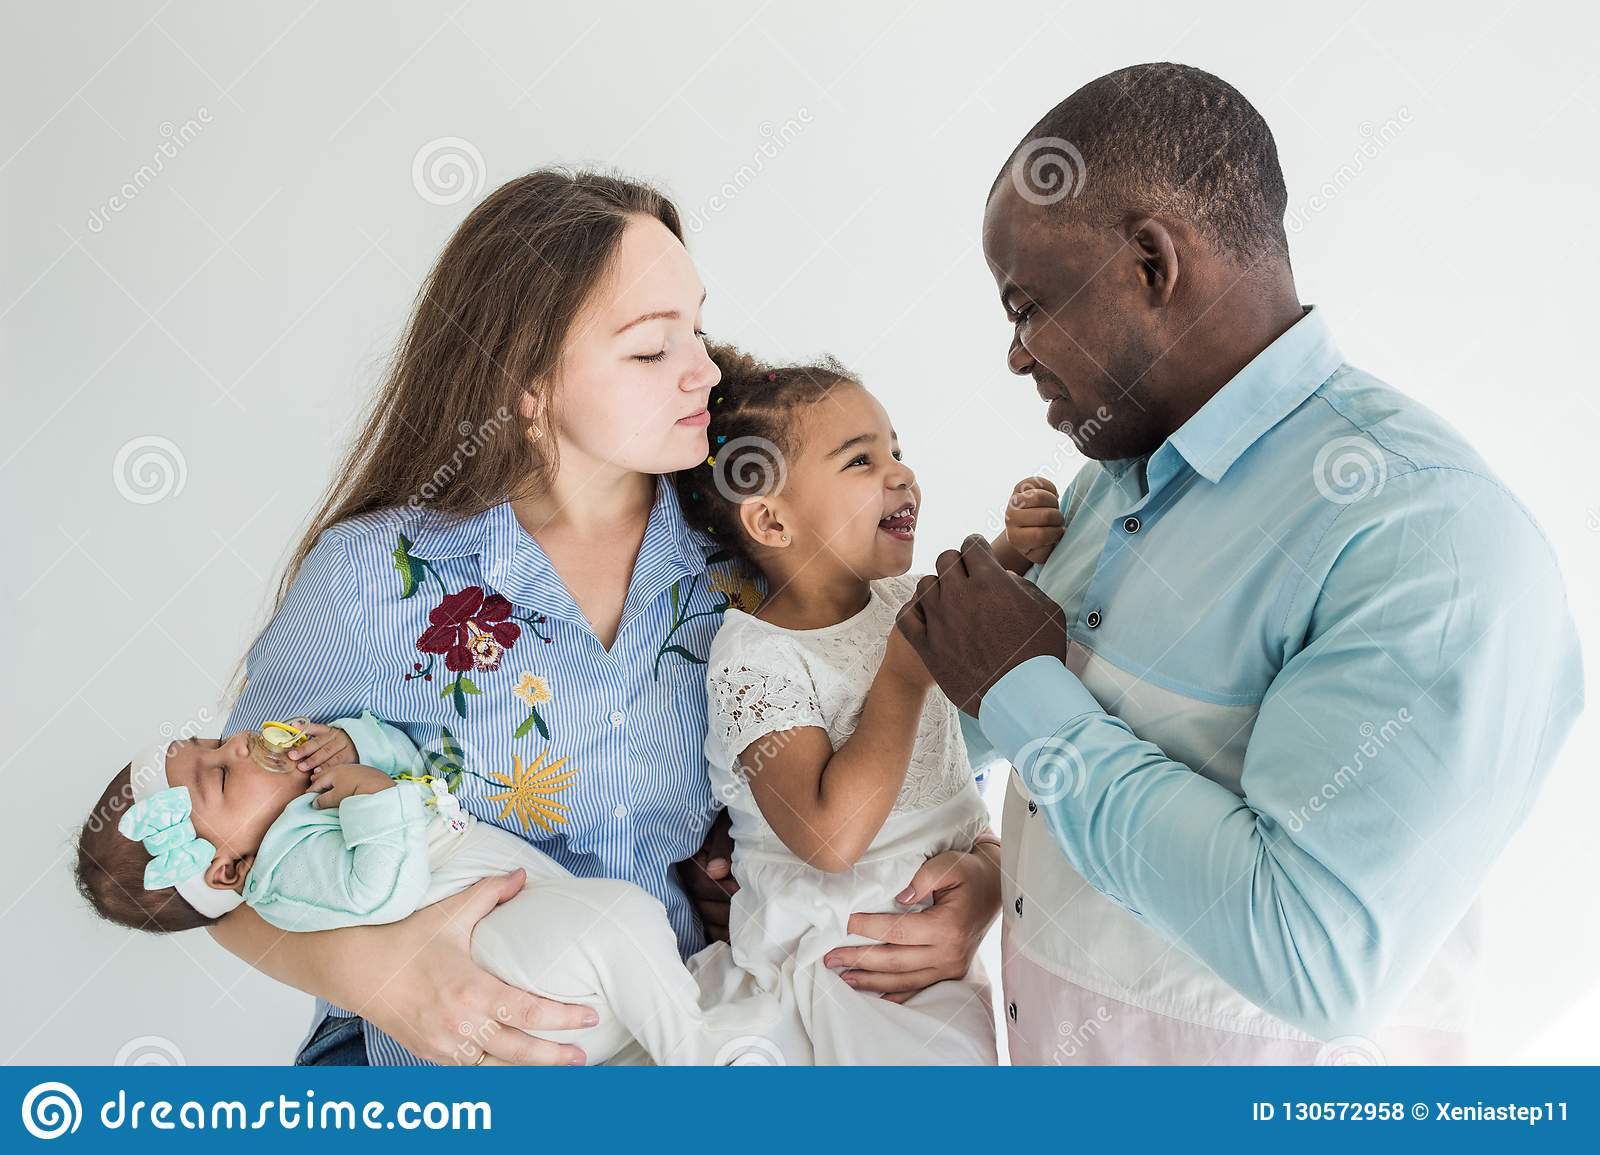 Family portrait on a white background happy multiethnic family family values